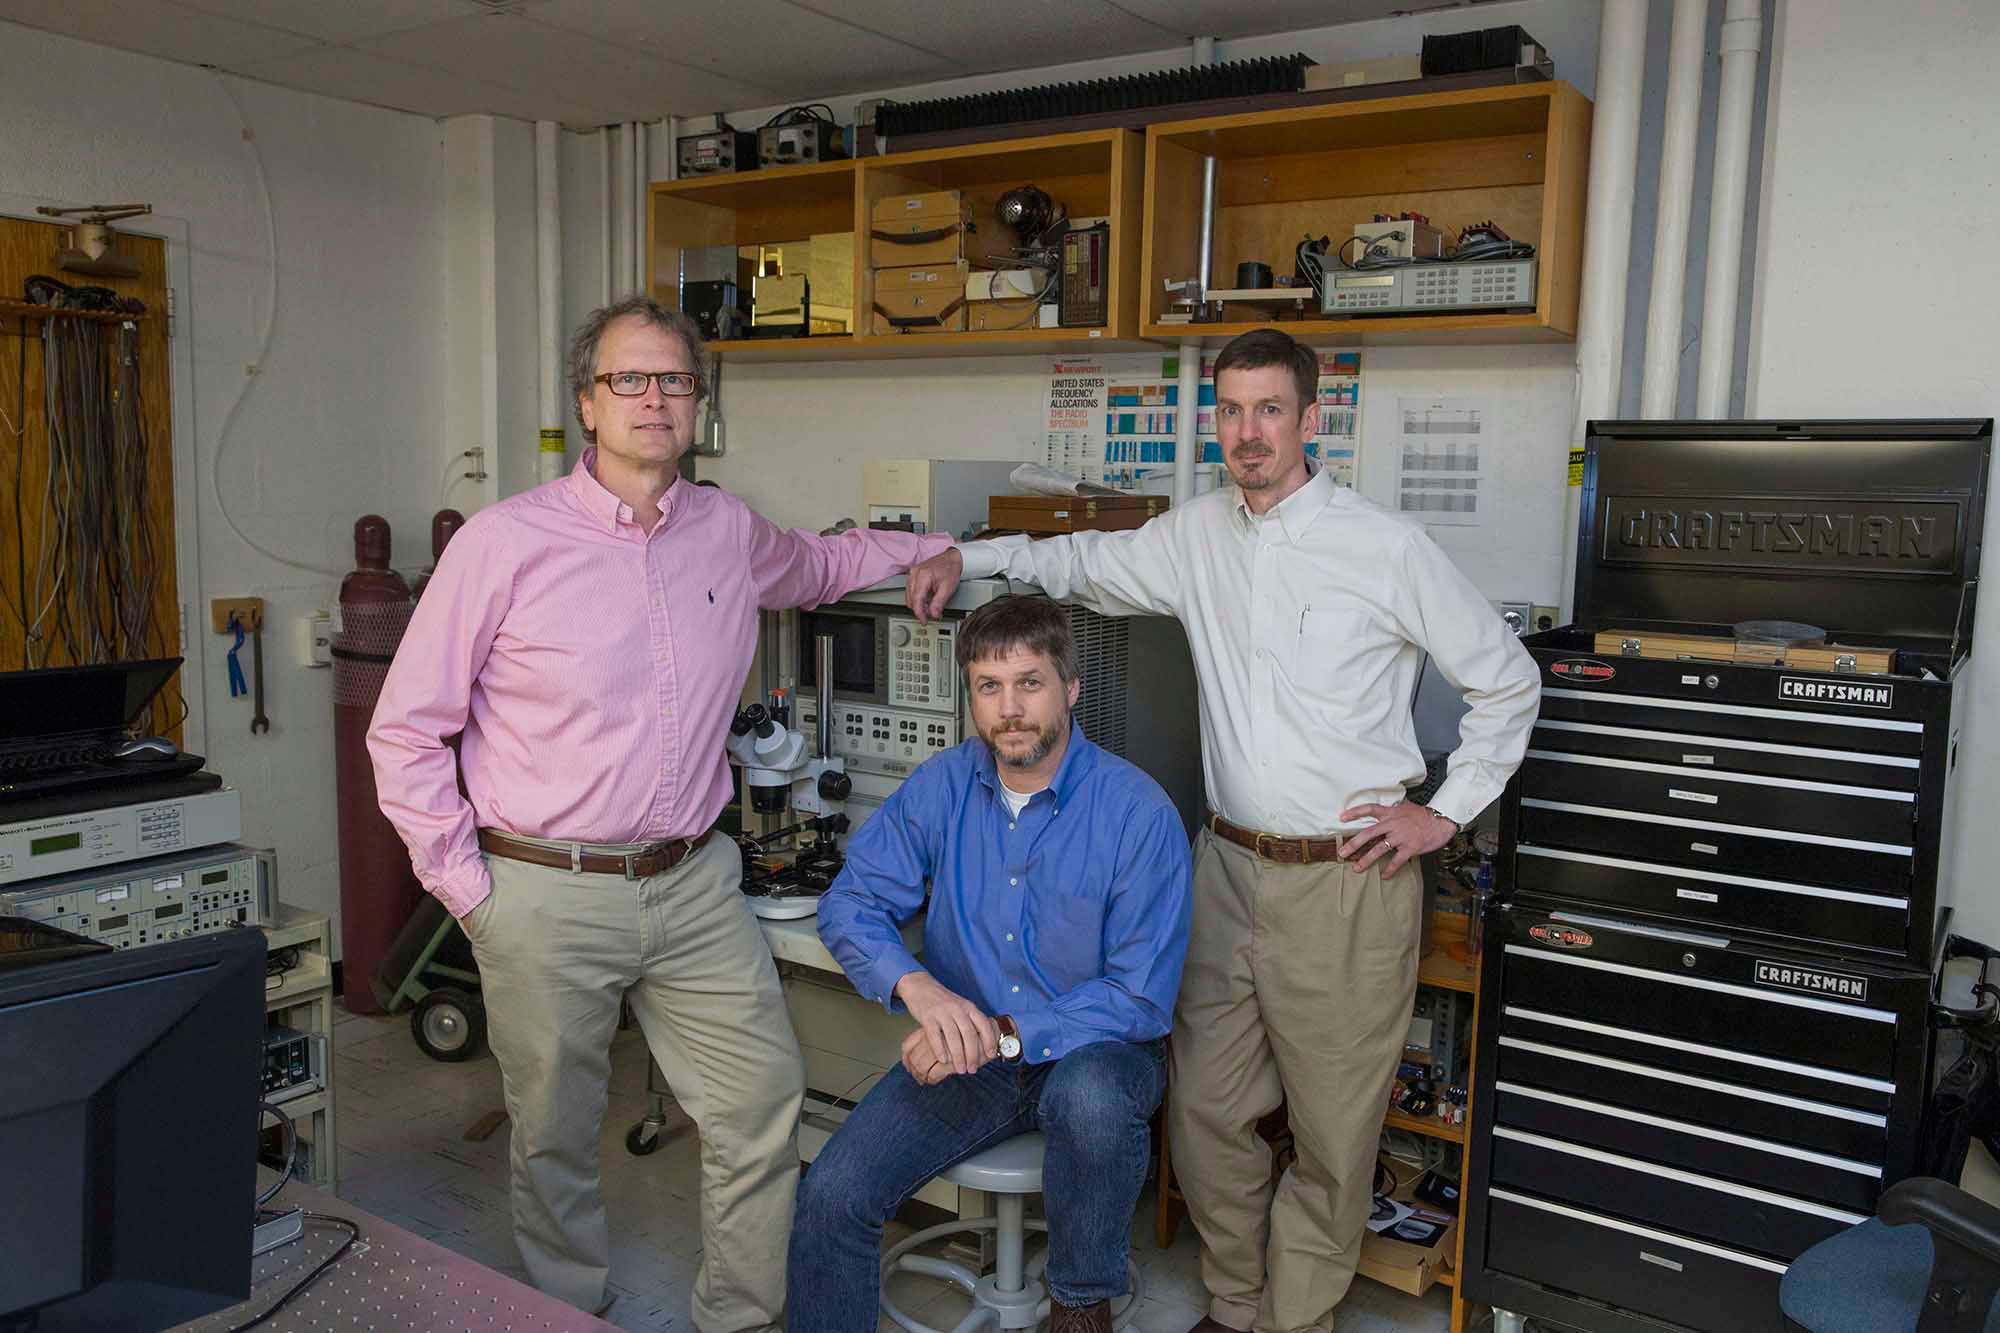 Dominion Microprobes group winners: This year's Innovators of the Year group winners from left to right, professors Robert M. Weikle II, N. Scott Barker and Arthur W. Lichtenberger.